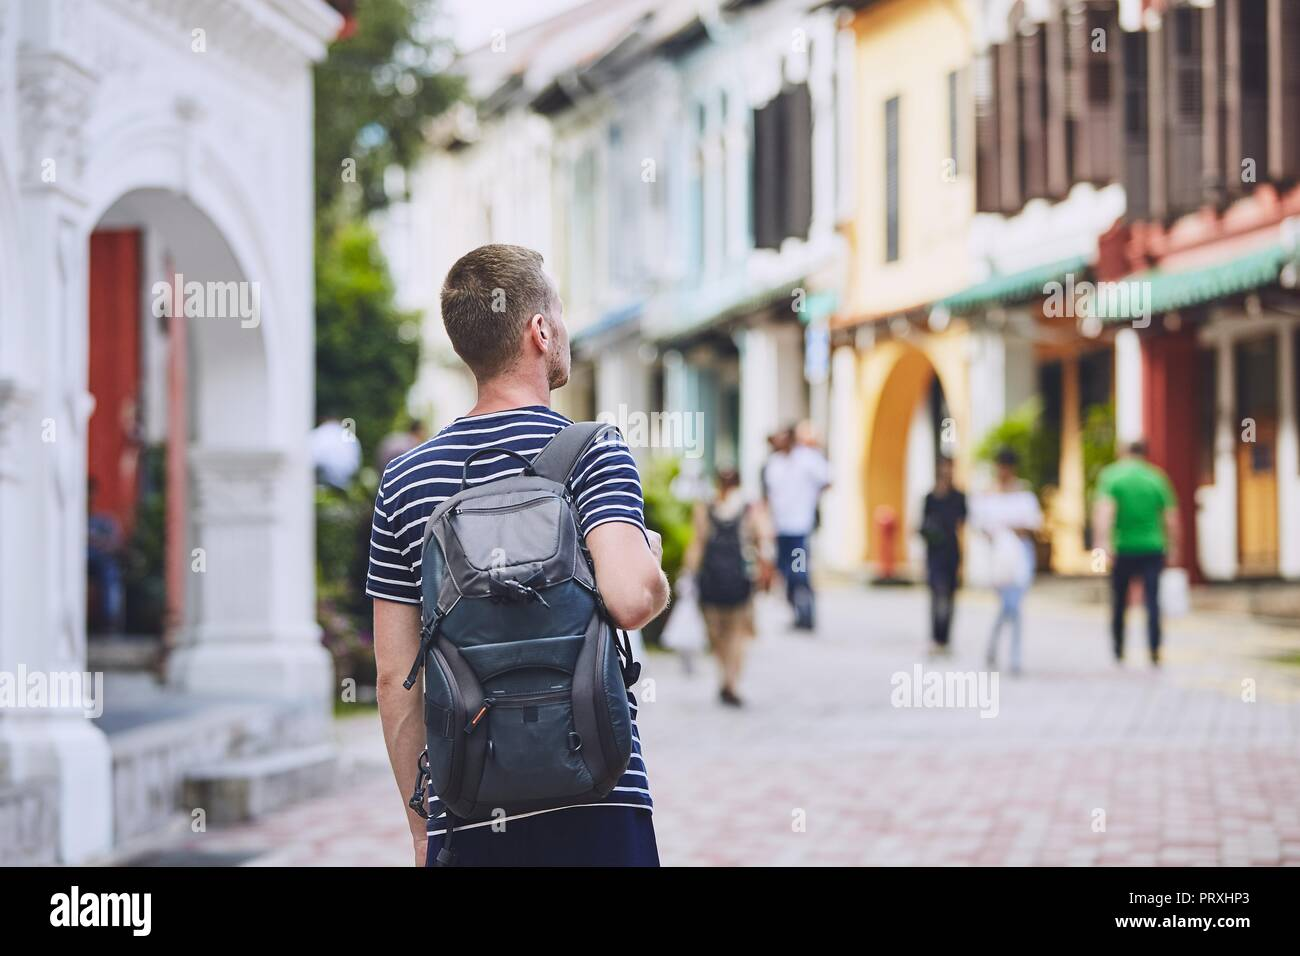 Traveler in city. Young man with backpack admiring architecture of old houses in Singapore. - Stock Image